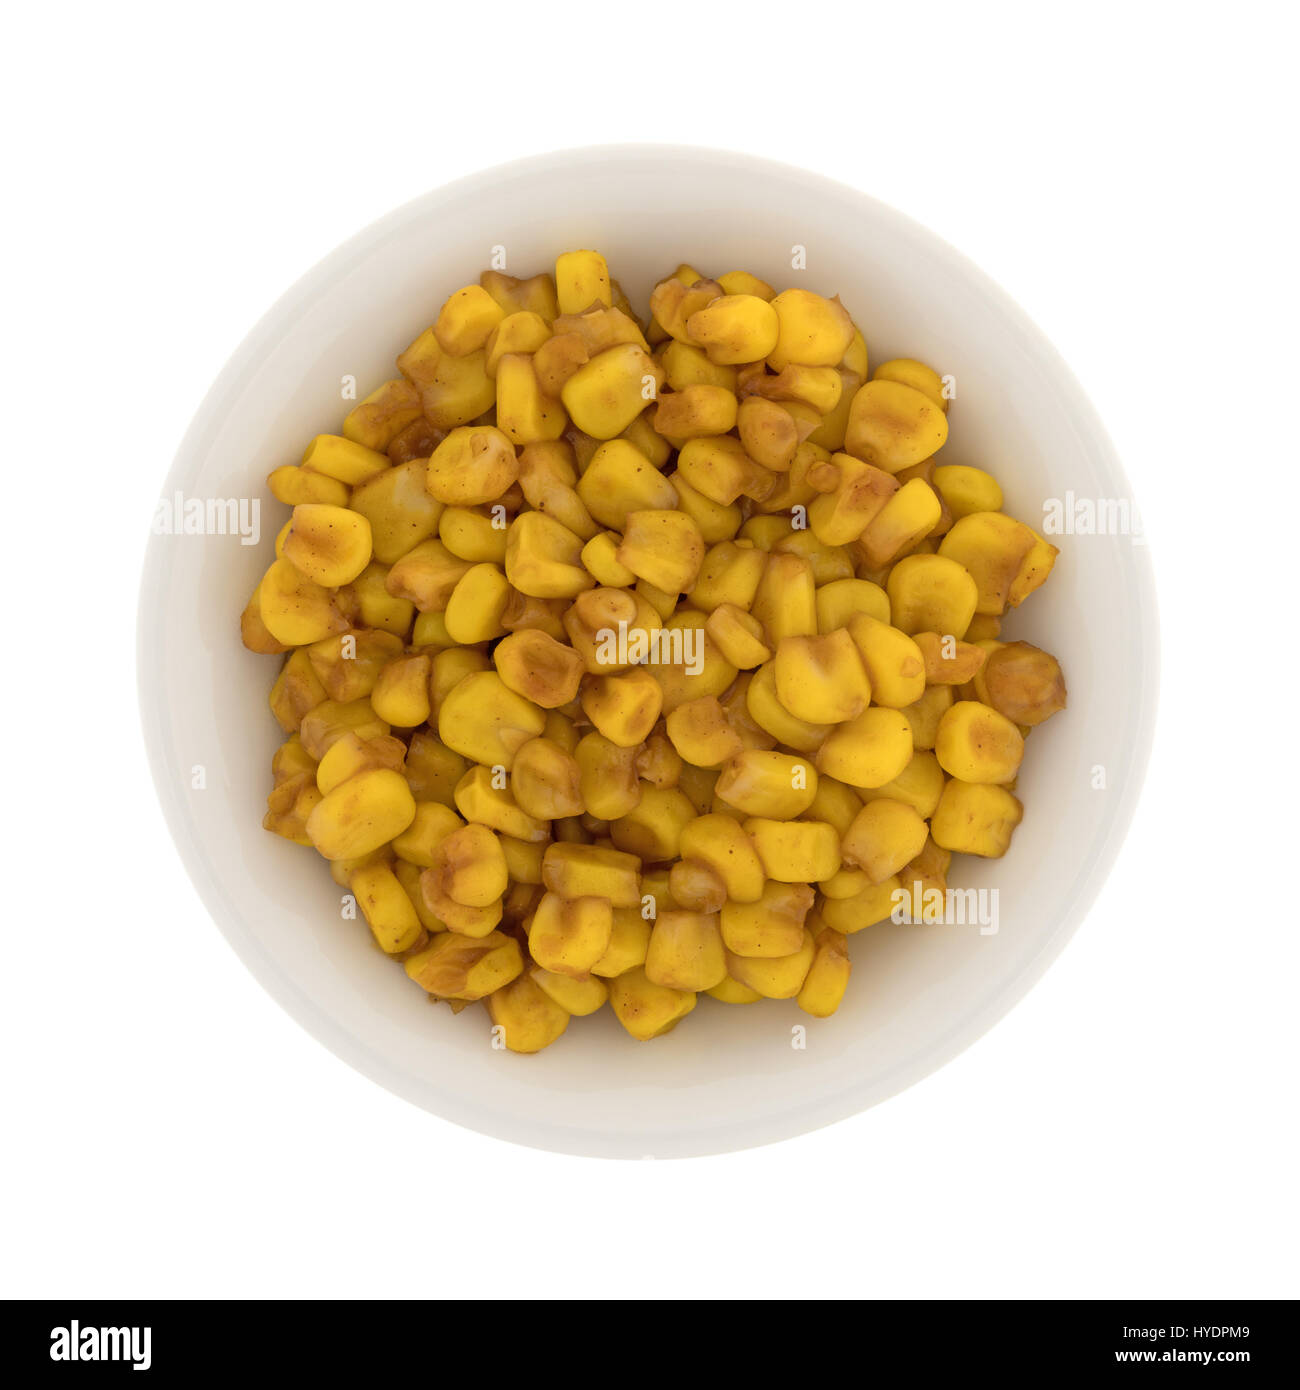 Top view of an small bowl filled with barbecue flavored cut corn isolated on a white background. - Stock Image